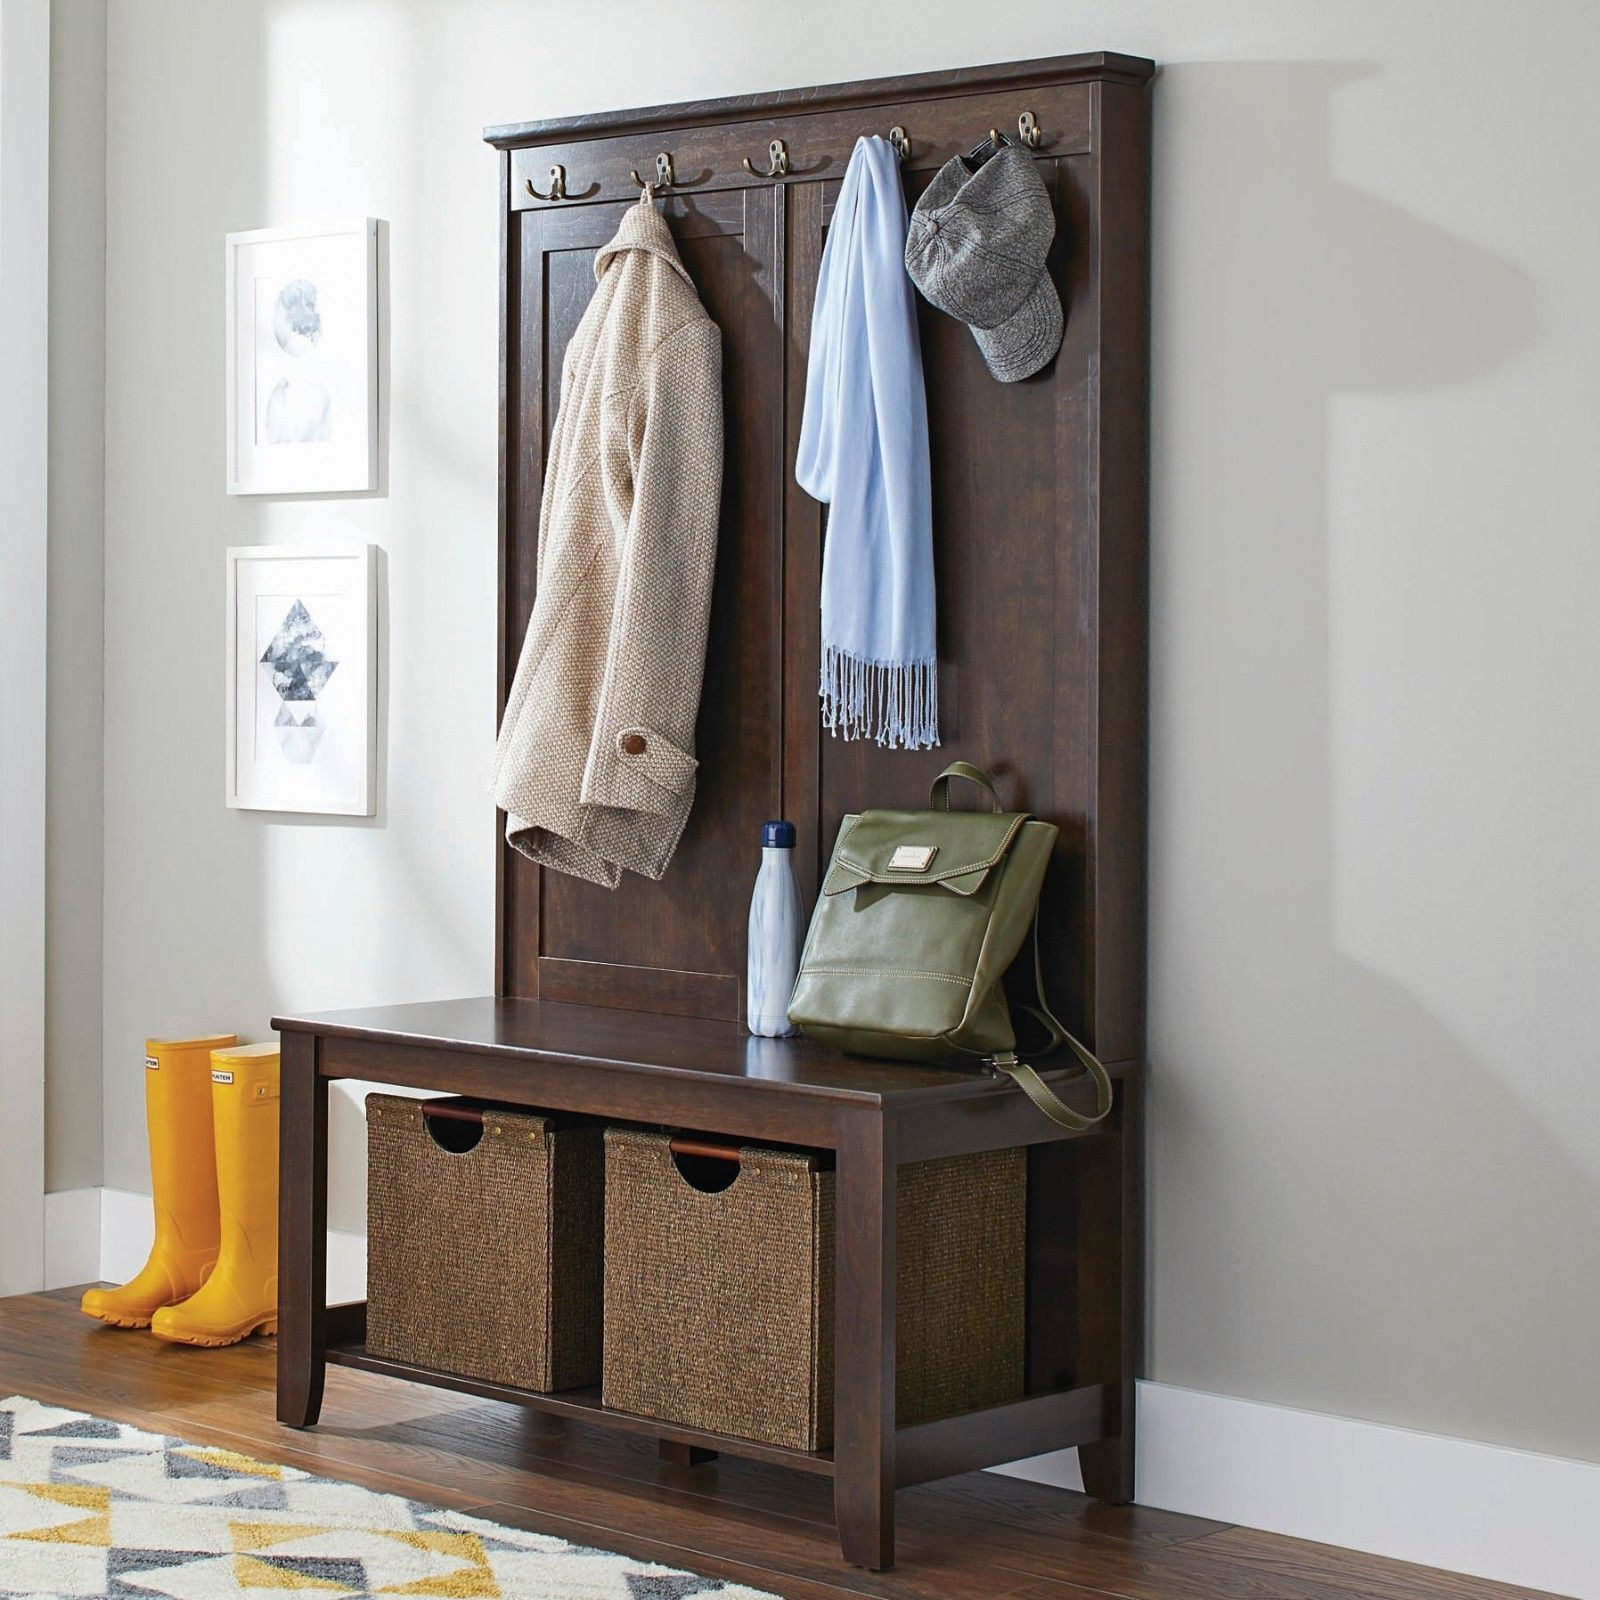 Hall Tree Storage Bench Coat Rack Entryway Hat Wood Seat Stand Hooks Entry  Shoe 1 Of 6Only 1 Available ...